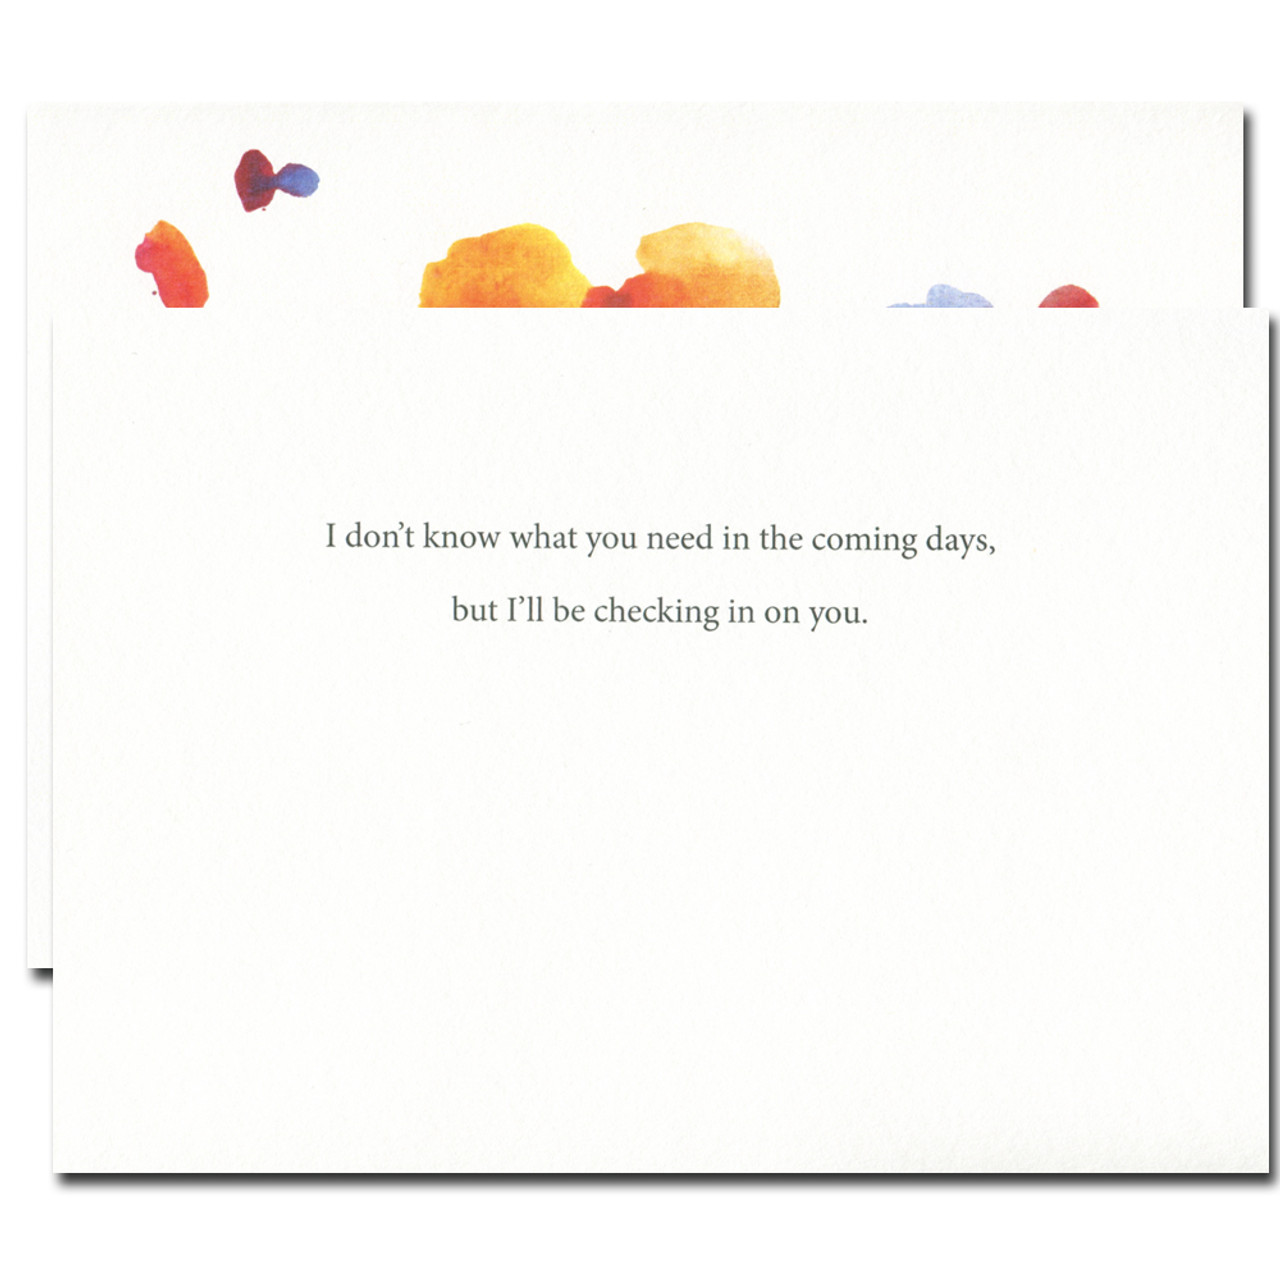 Inside of Thinking of You card reads:  I don't know what you need in the coming days, but I'll be checking in on you.